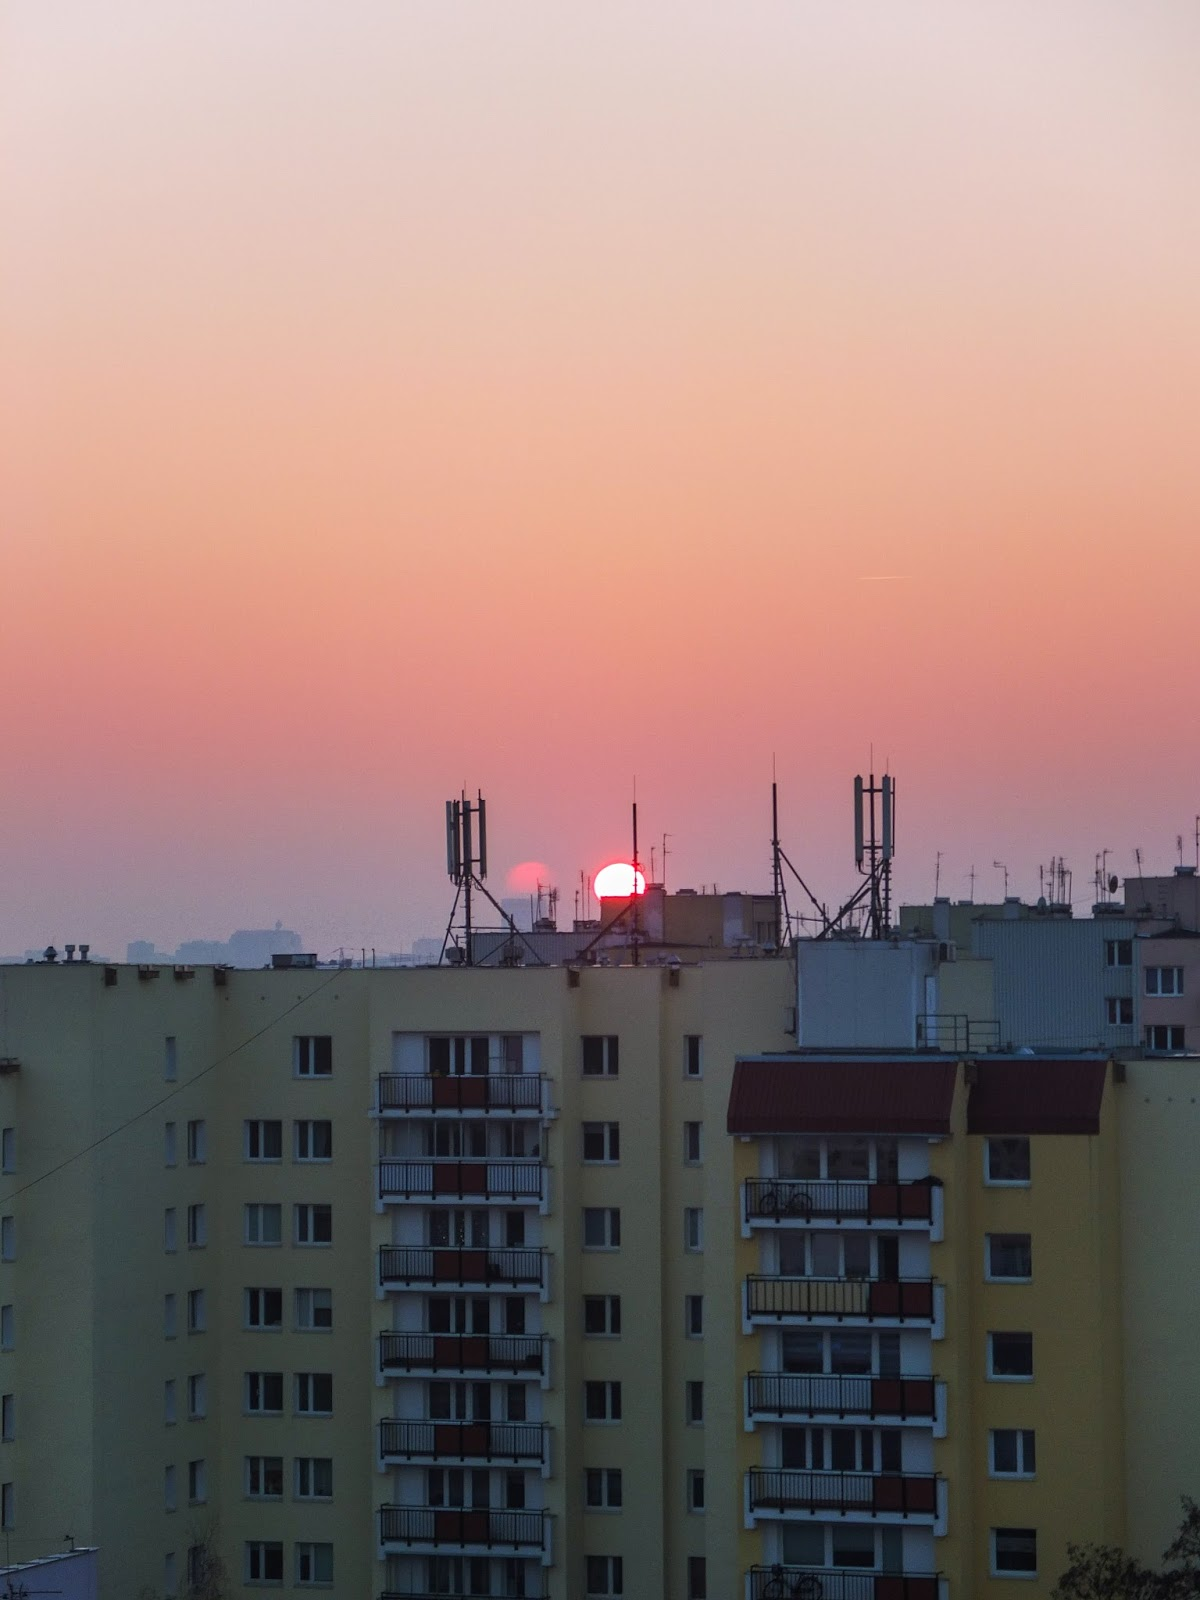 Sun setting over apartment buildings in Warsaw in the winter.